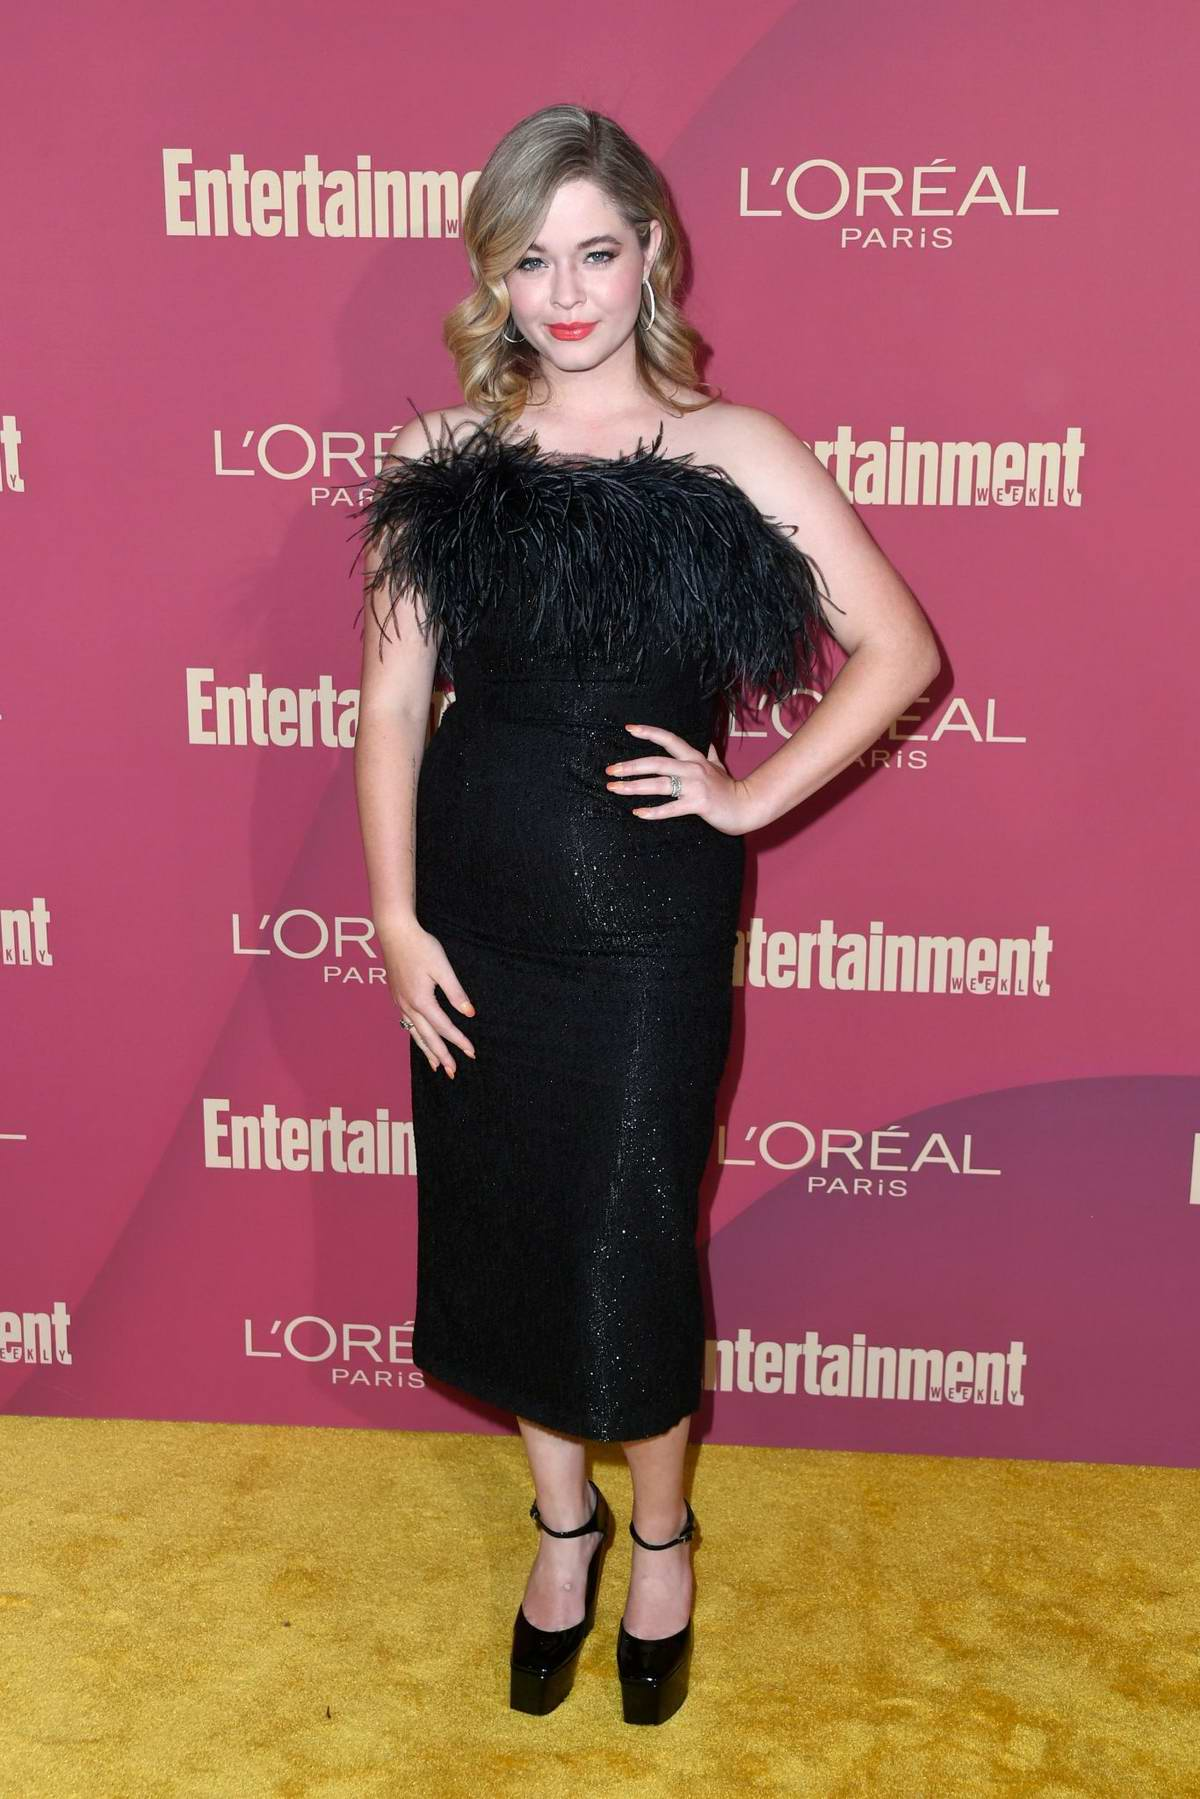 Sasha Pieterse attends 2019 Pre-Emmy Party hosted by Entertainment Weekly and L'Oreal Paris in Los Angeles